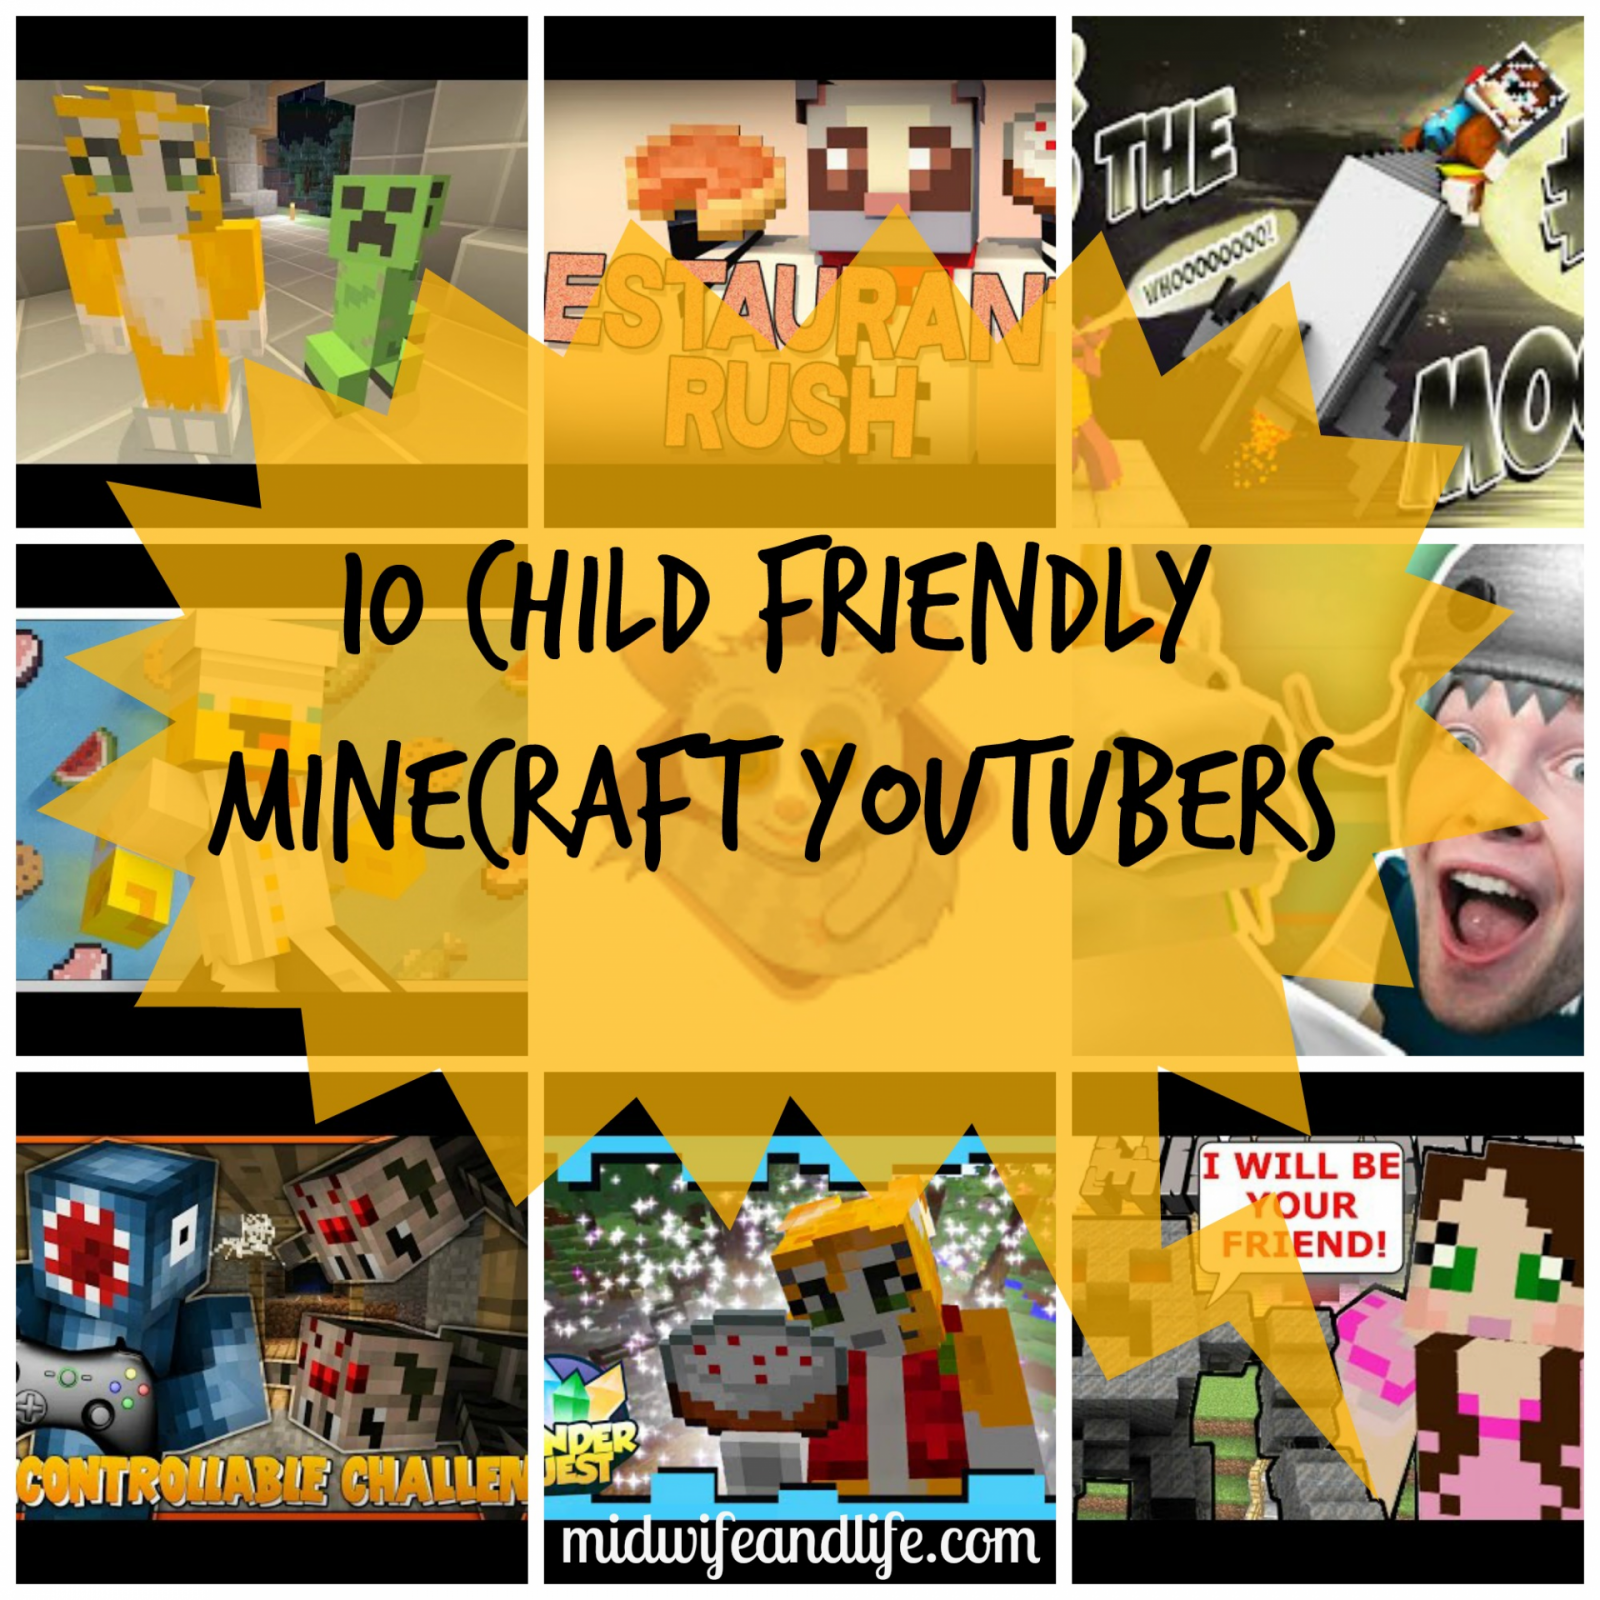 10 Child Friendly Minecraft YouTubers you can let your child under 12 watch